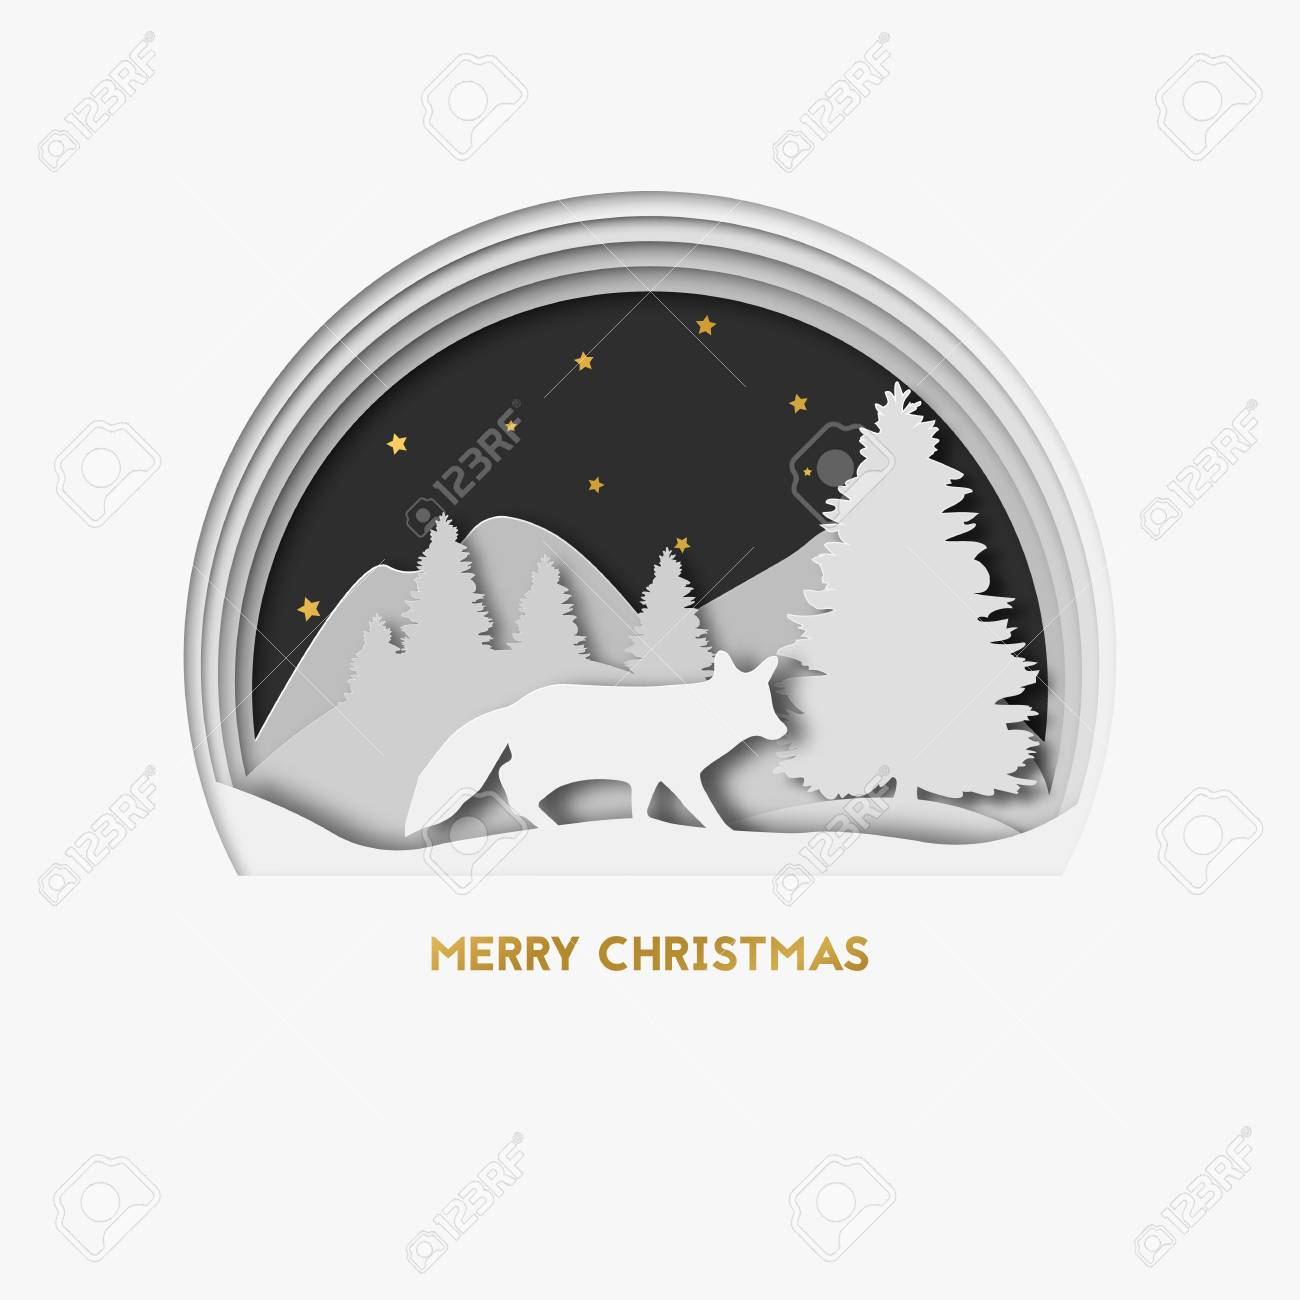 merry christmas 3d layered paper art greeting christmas card